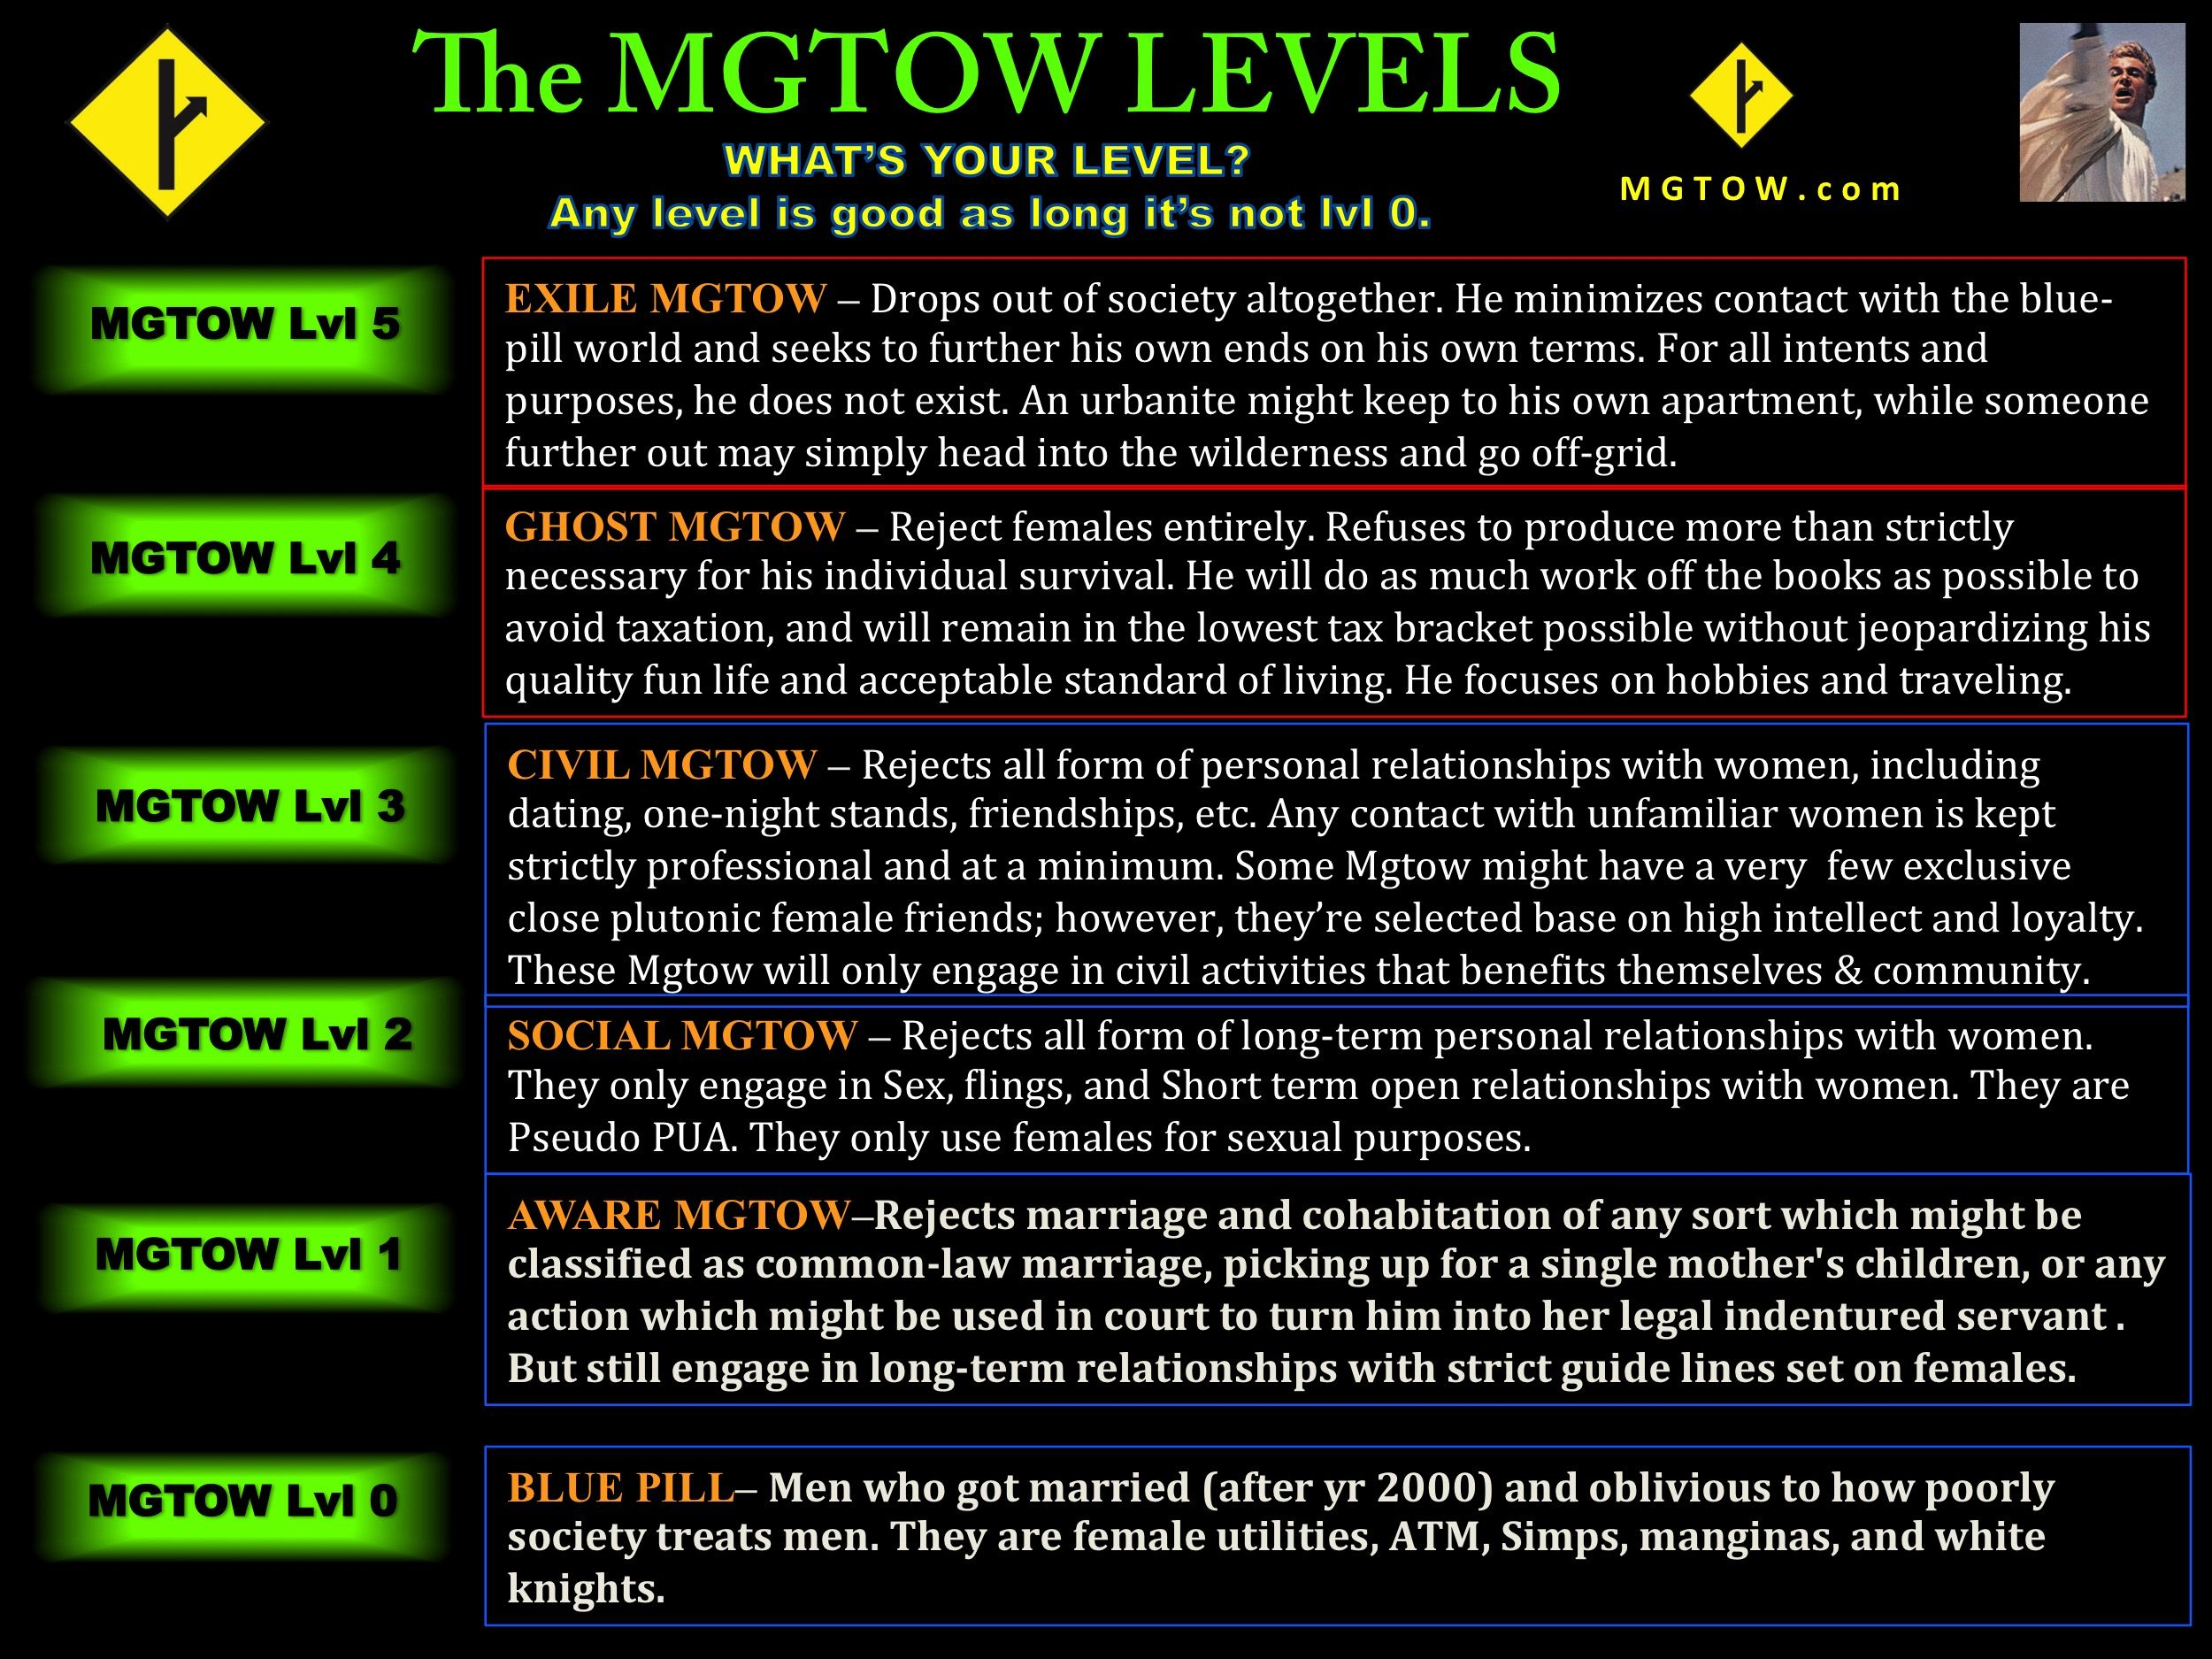 Oh SWEET! Honest to God, if all the MGTOW kind of just